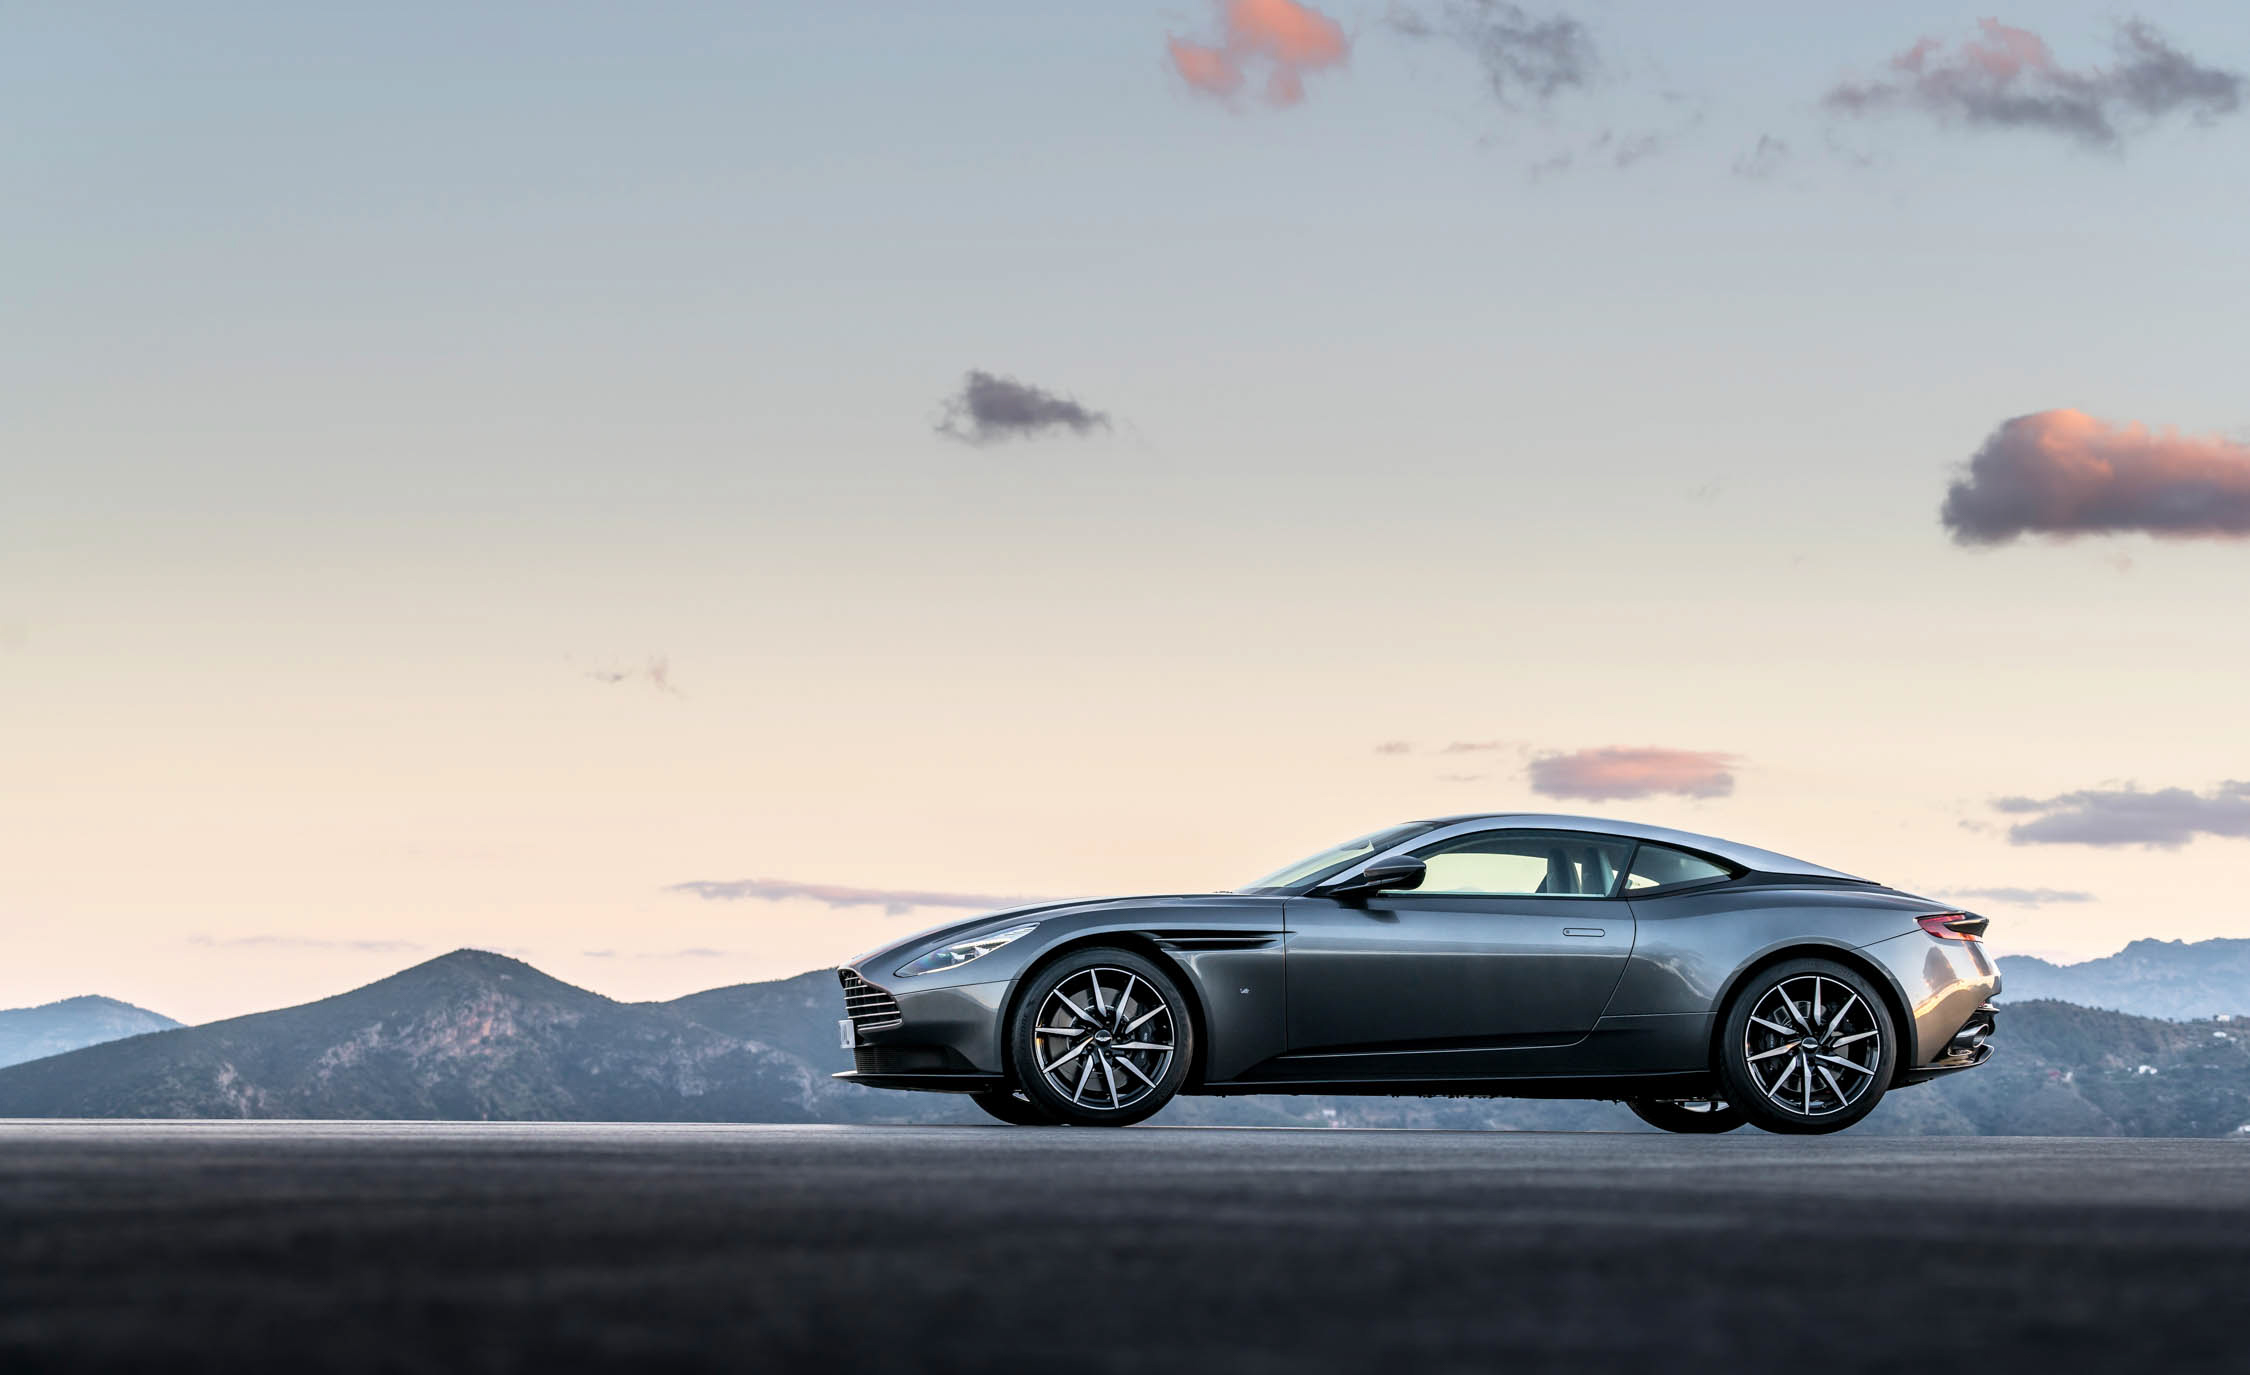 2017 Aston Martin Db11 Exterior Side View (View 19 of 22)